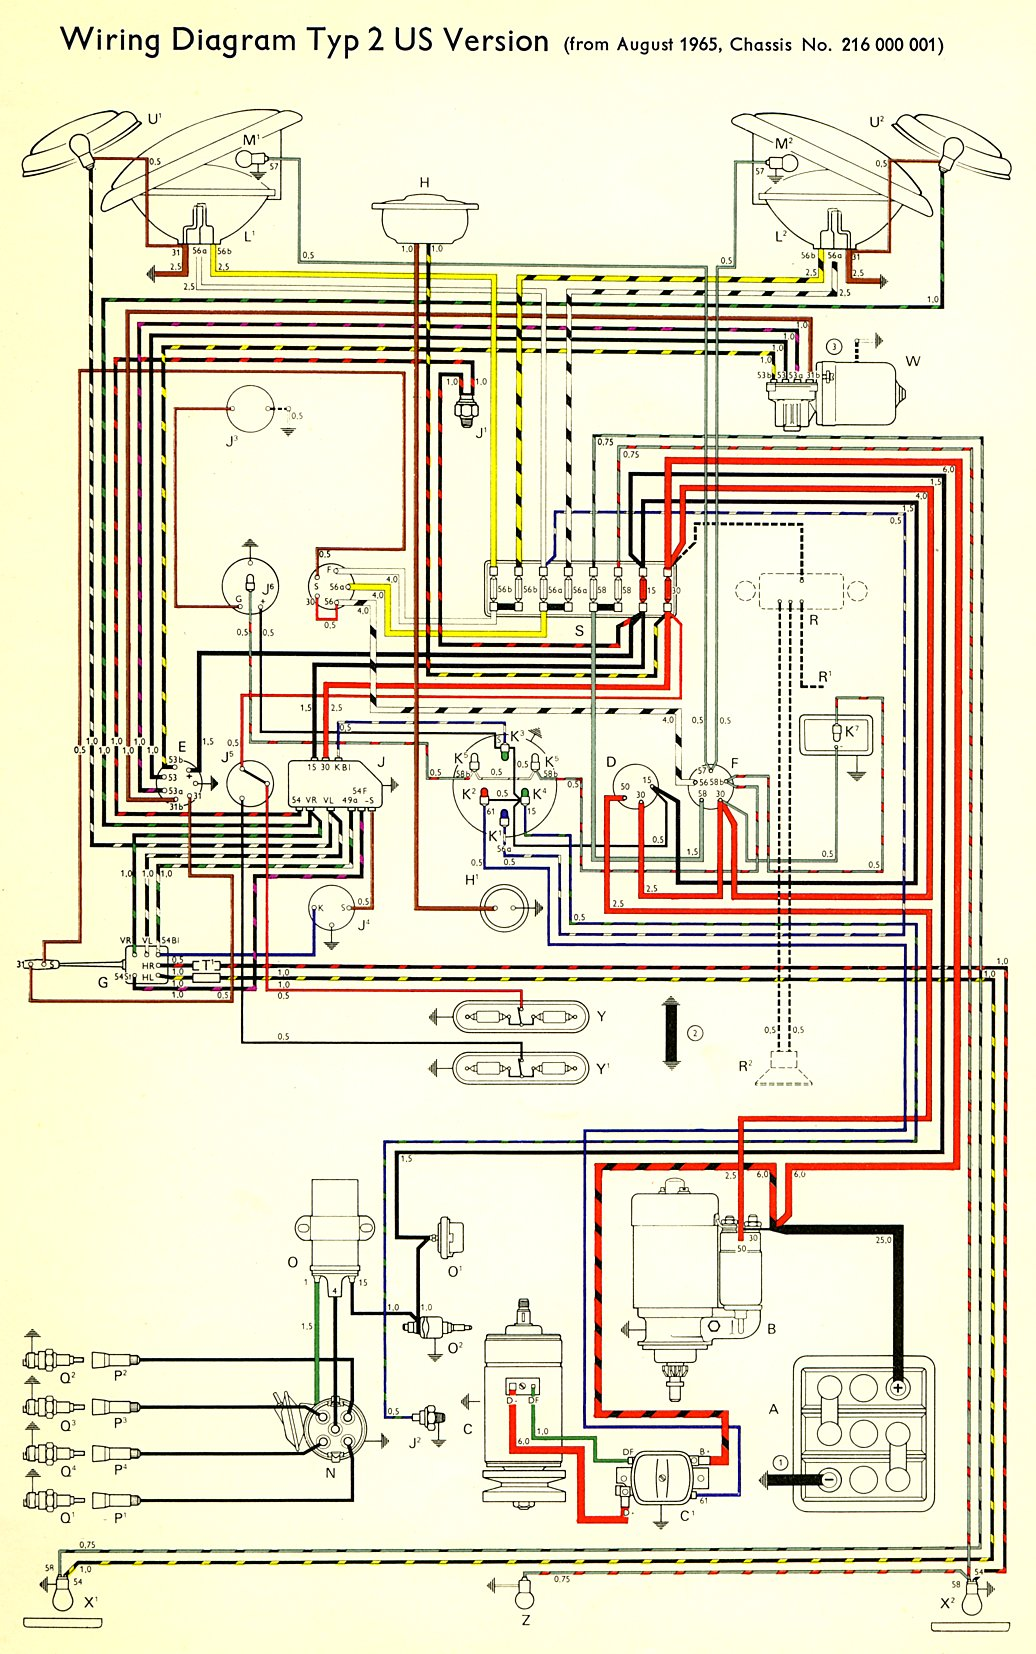 volkswagen van wiring diagram - wiring diagram overview schematic-side -  schematic-side.aigaravenna.it  aigaravenna.it